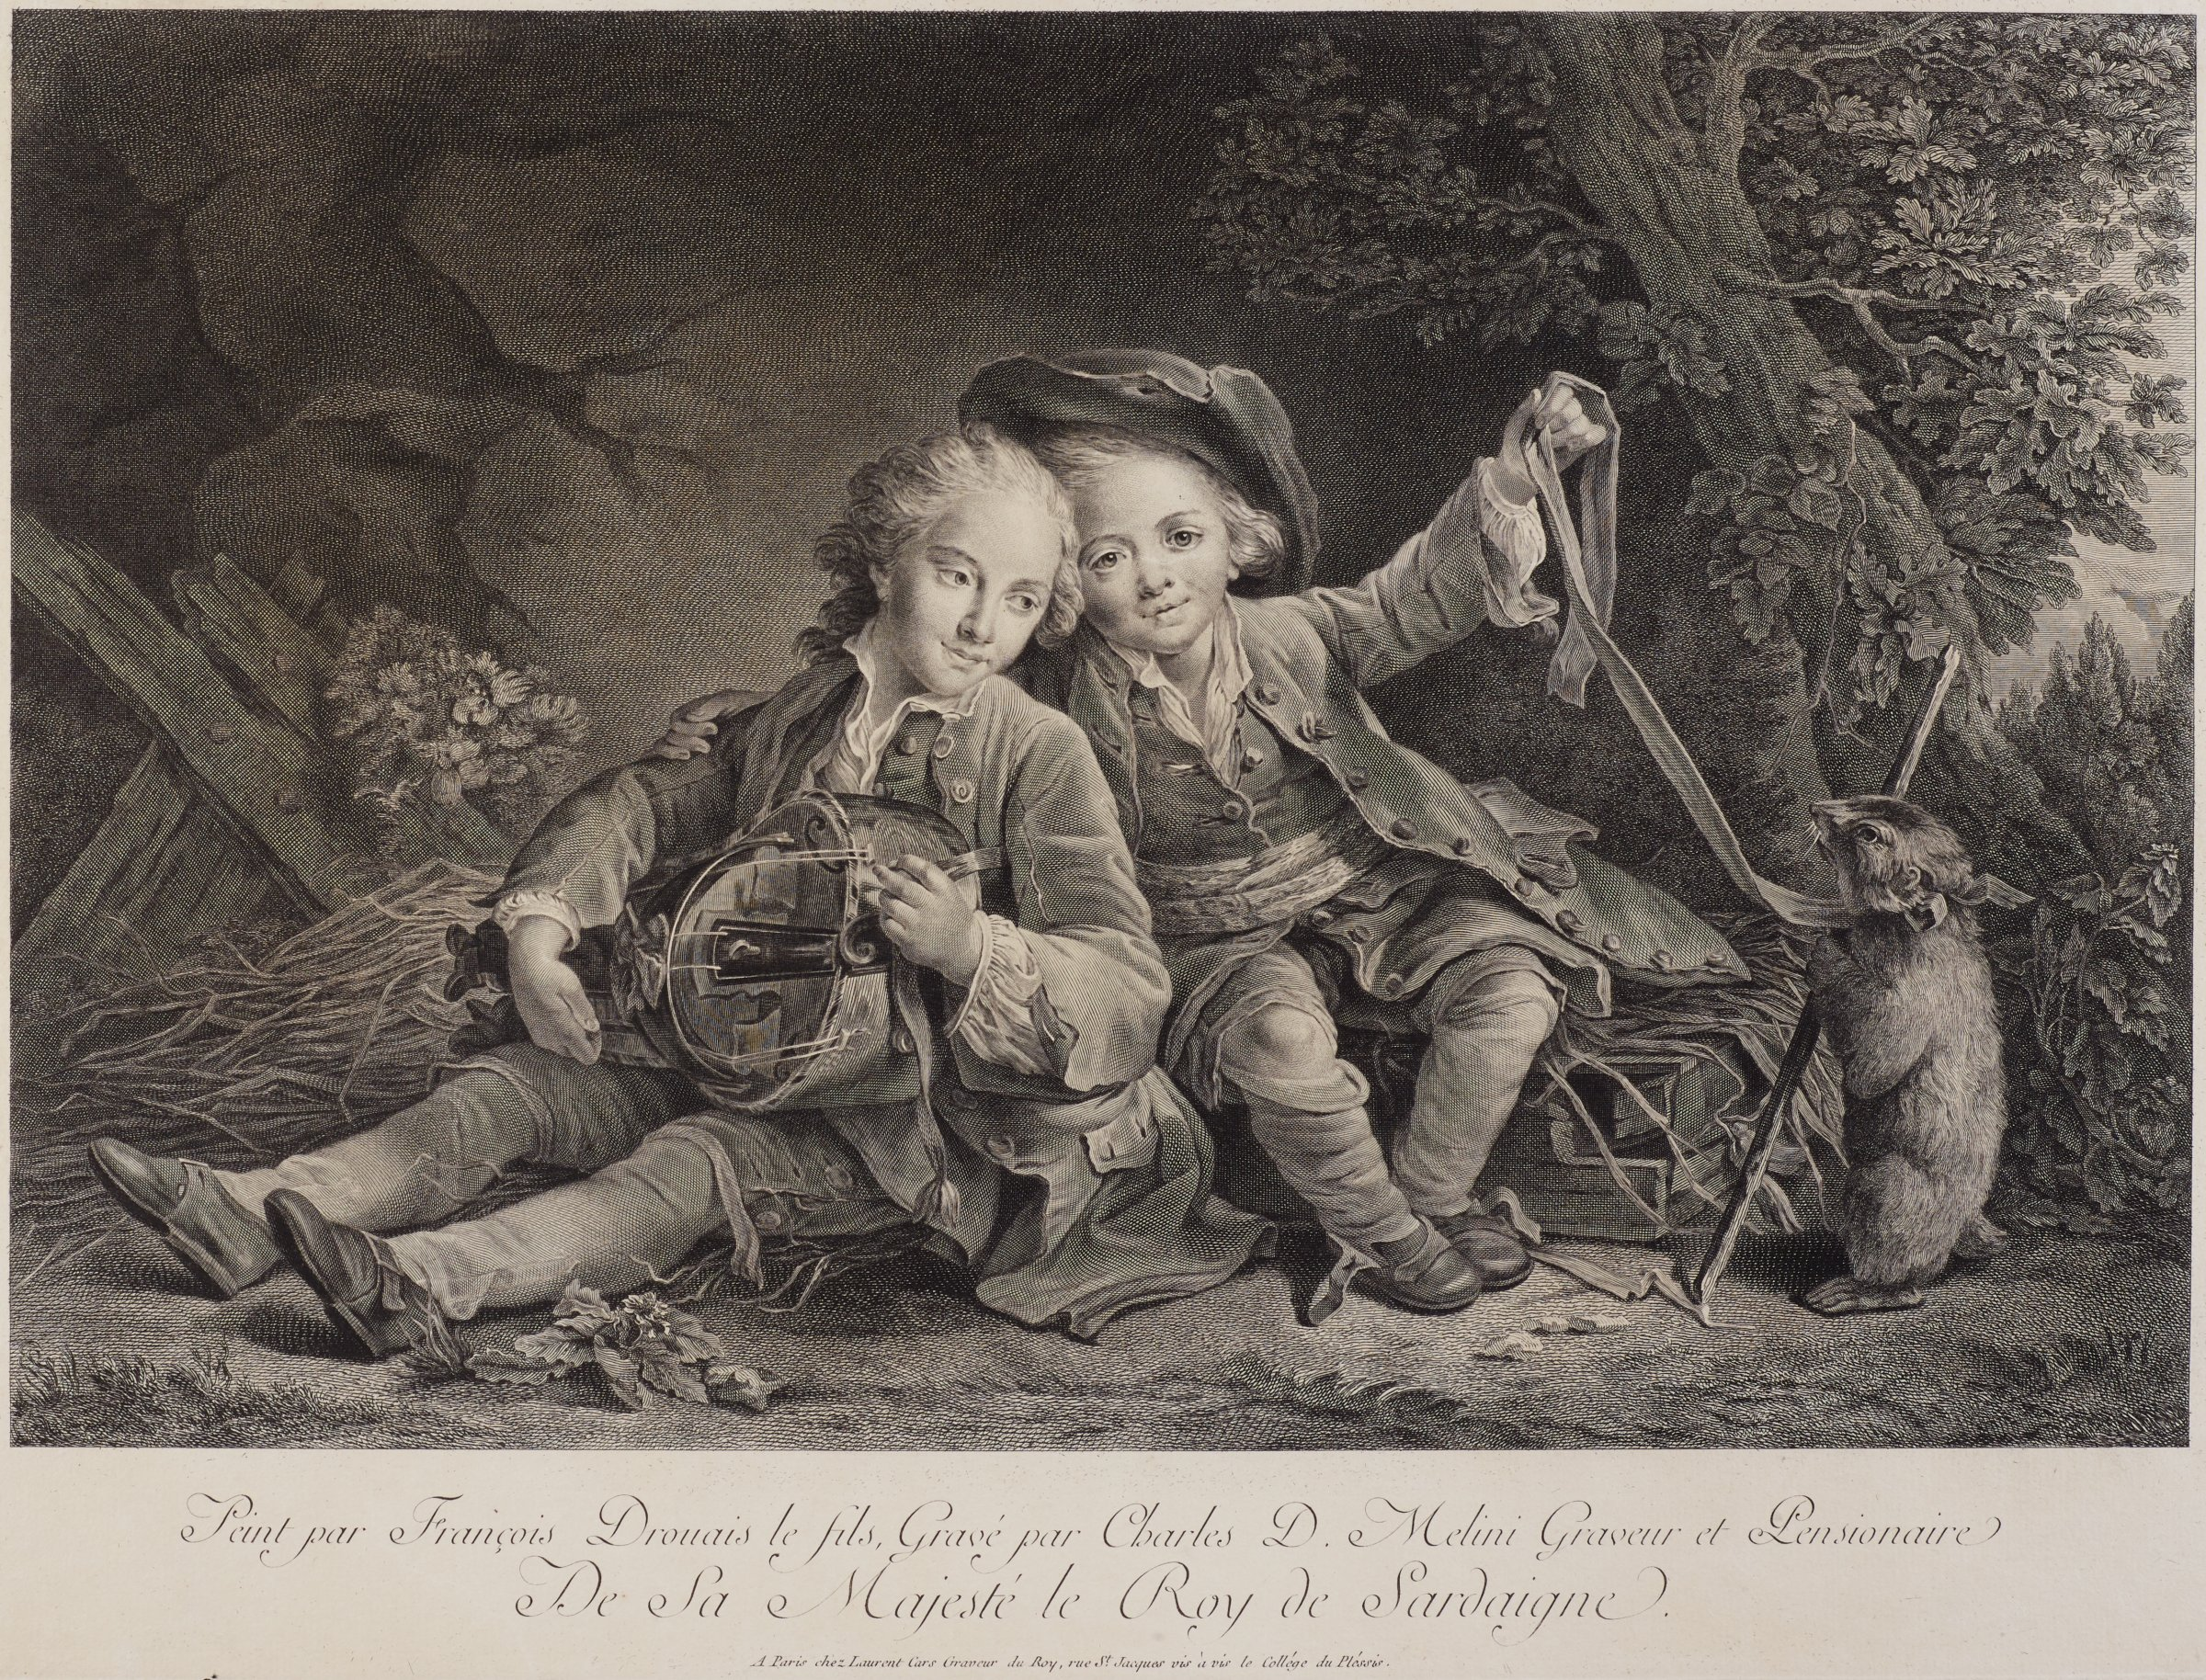 Two children sit in the center of the composition. One child holds a leash of a marmot. They sit in front of a cracking wall, straw, and pieces of wood. Behind them on the right is a tree.